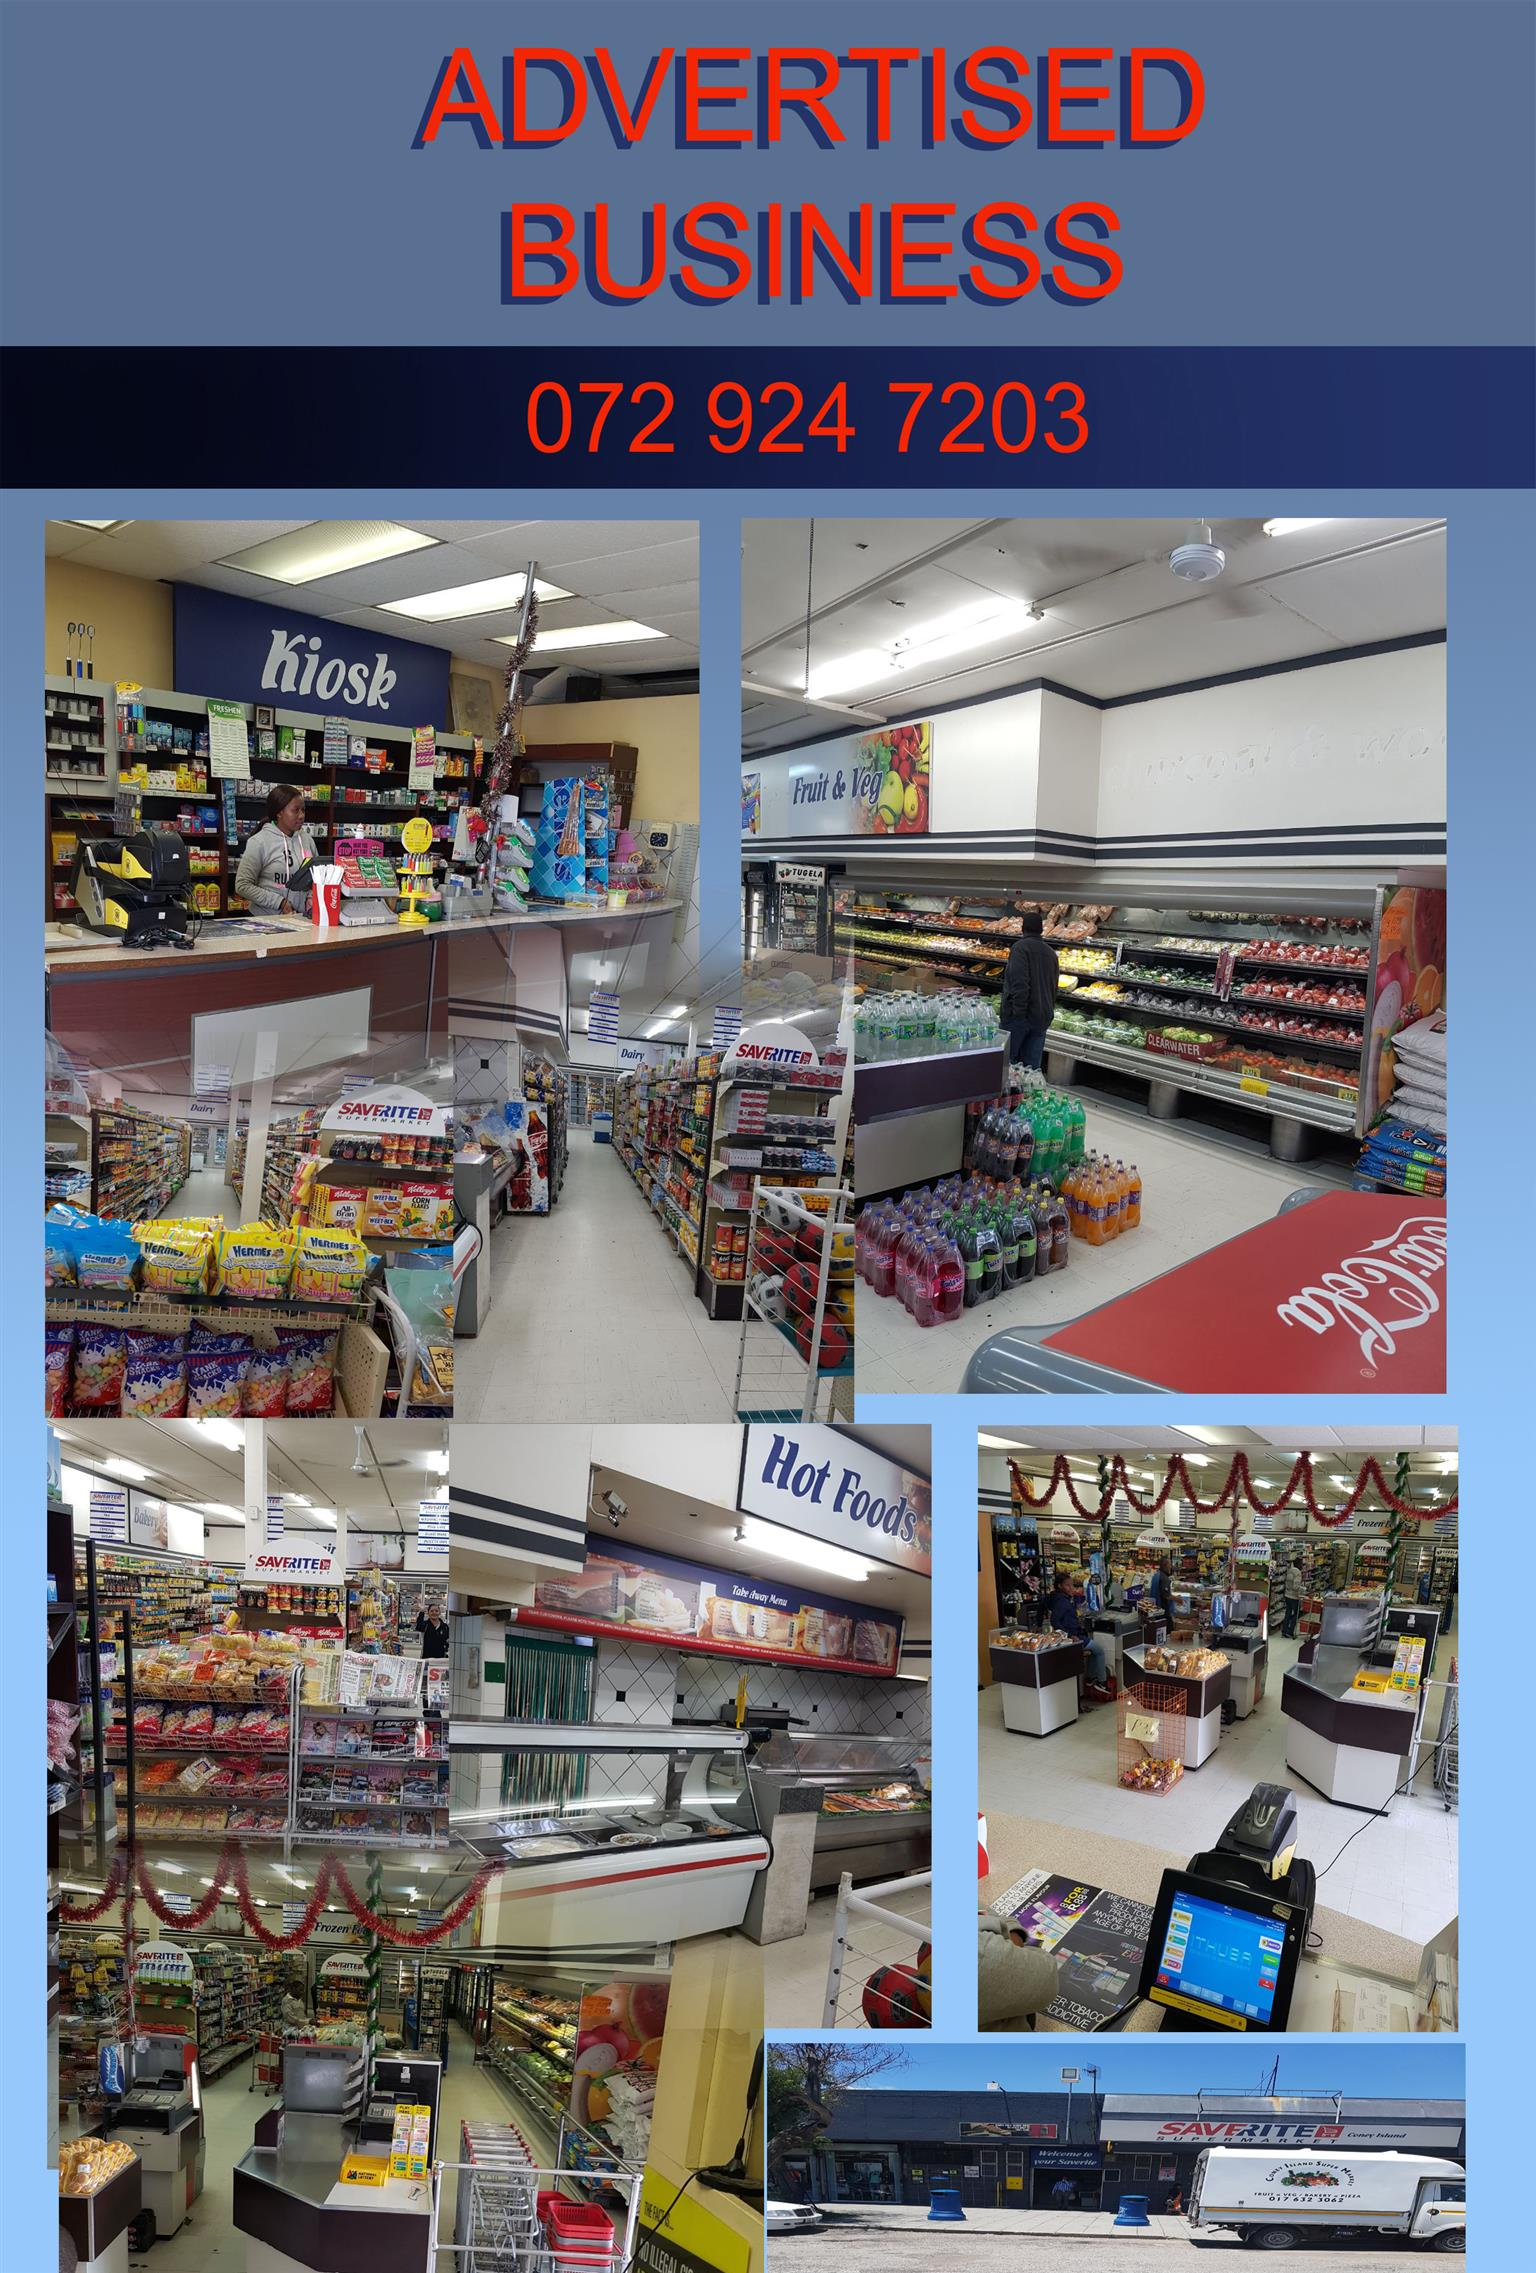 FRANCHISE SUPERMARKET IN SECUNDA AREA FOR SALE